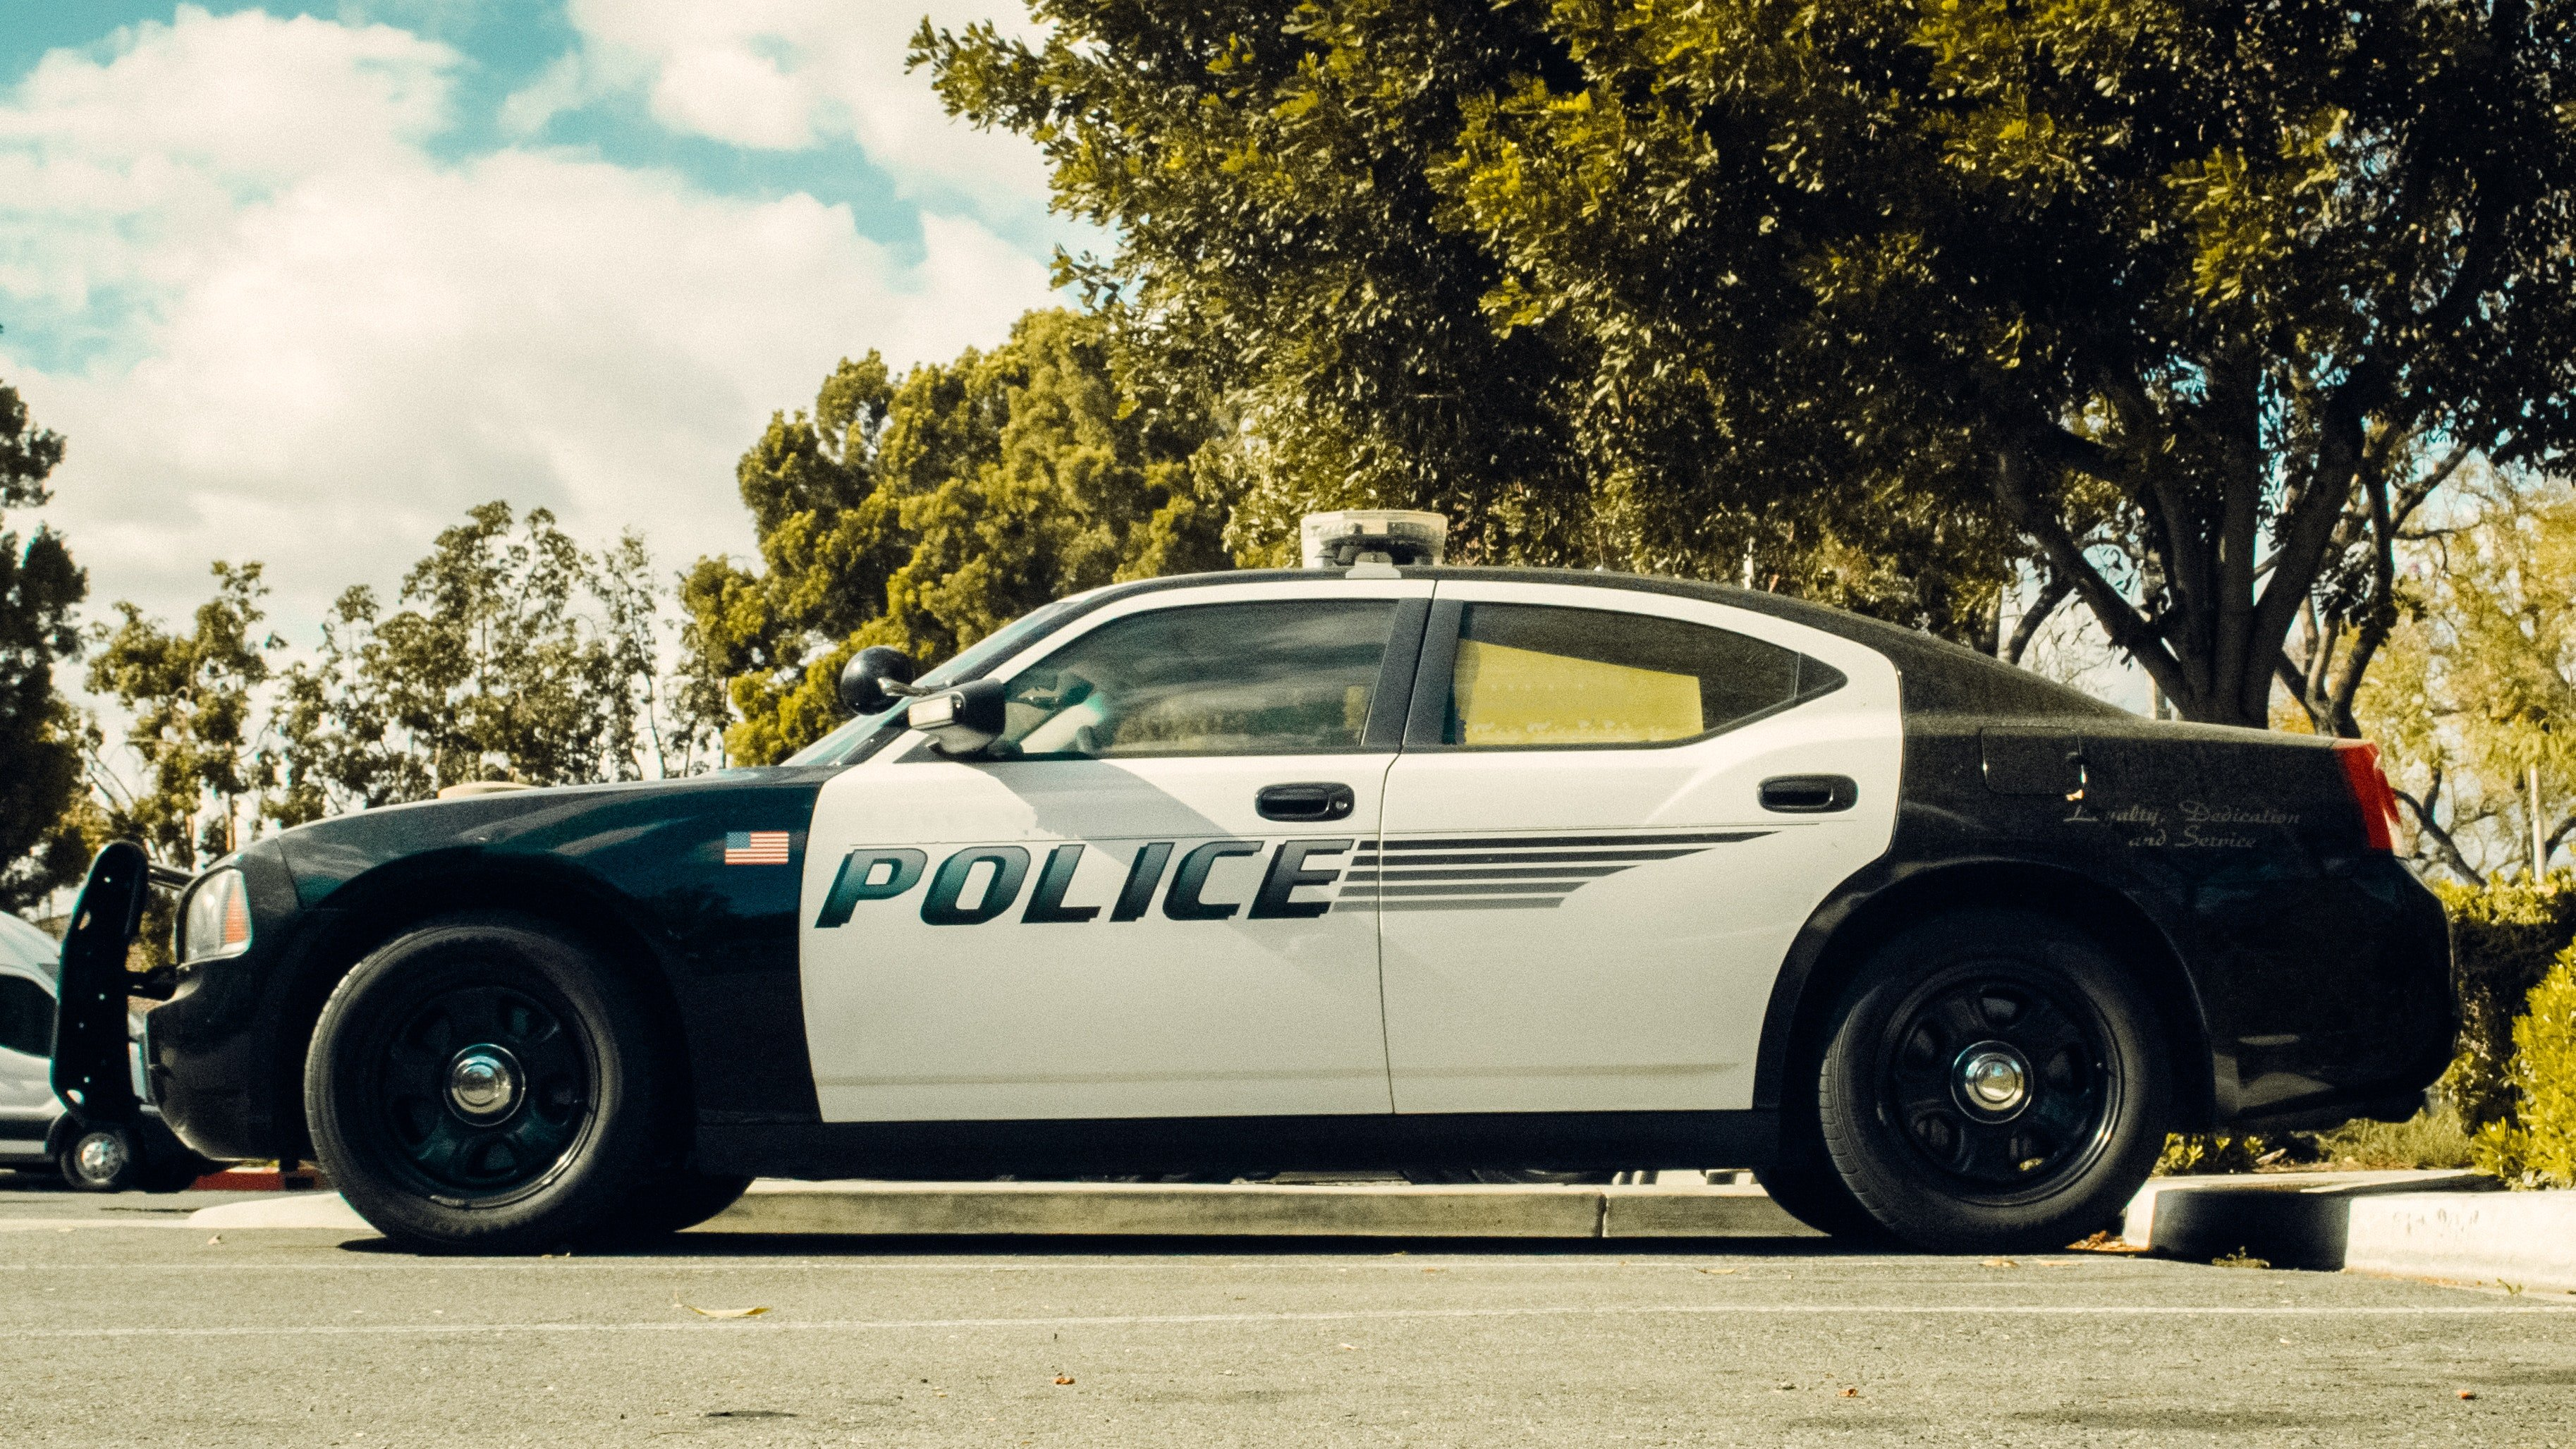 Pictured - A black and white police vehicle parked | Source: Pexels